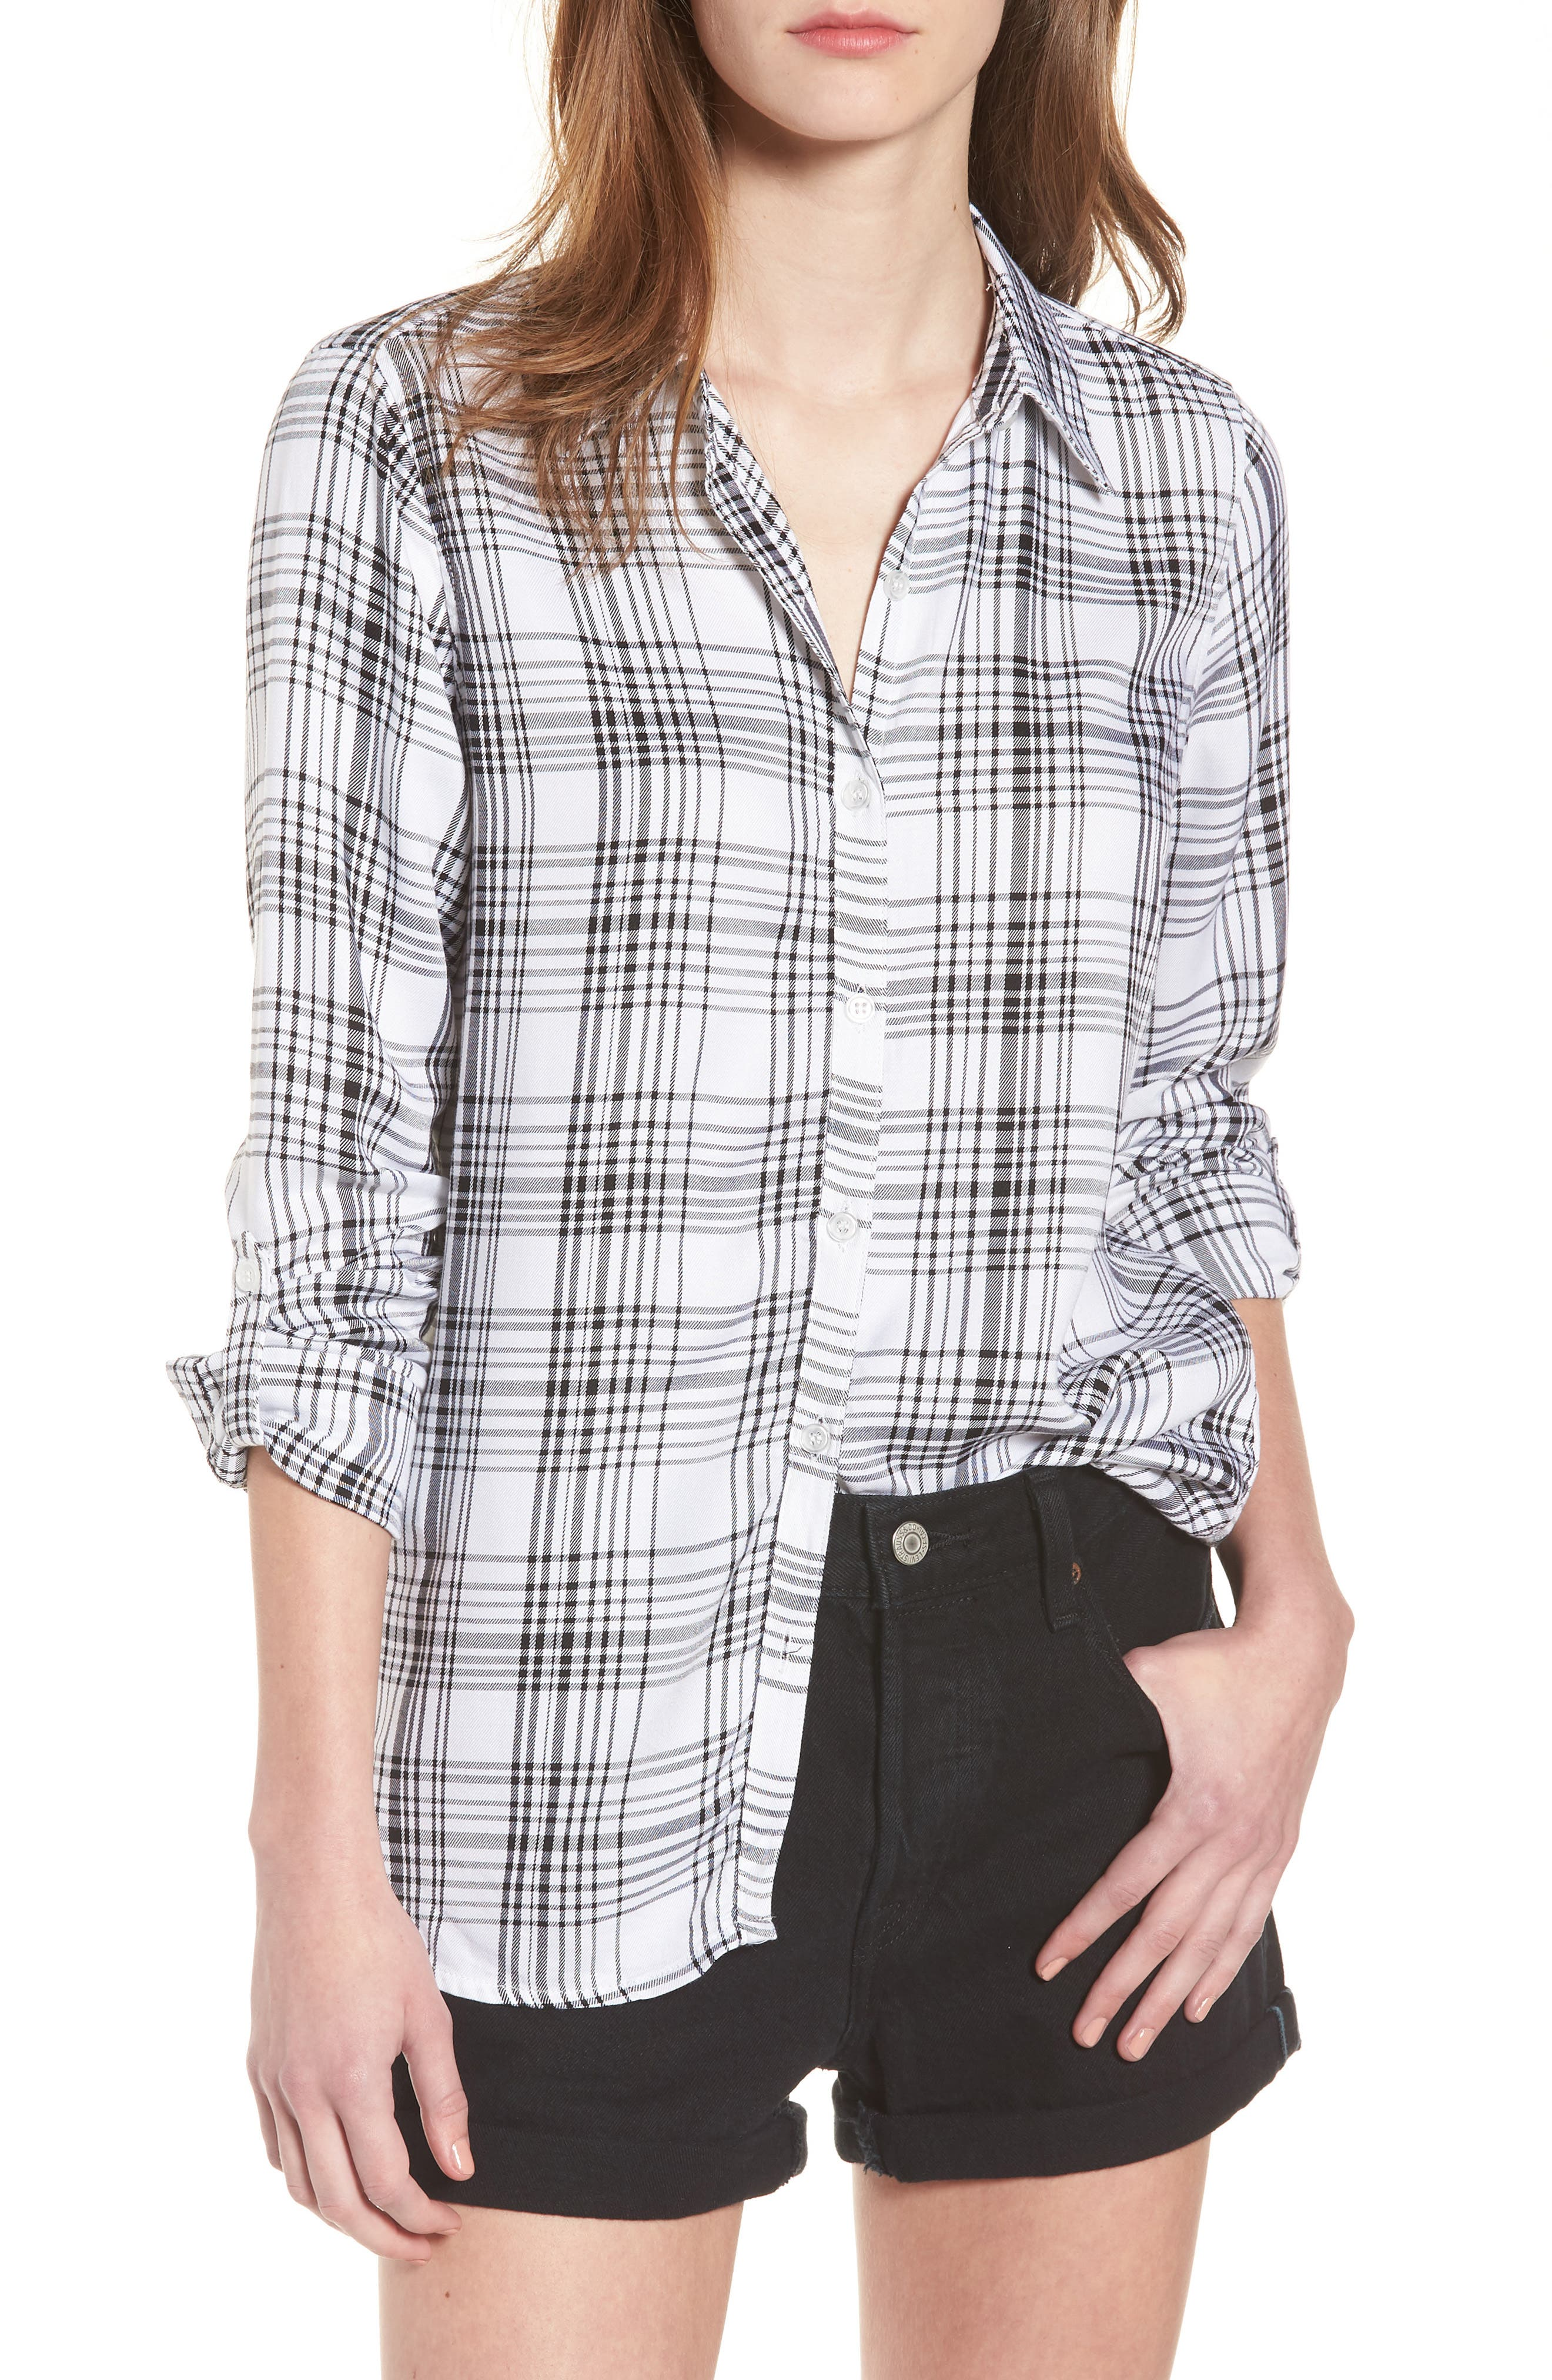 Roll-Tab Shirt,                             Main thumbnail 1, color,                             Black White Plaid